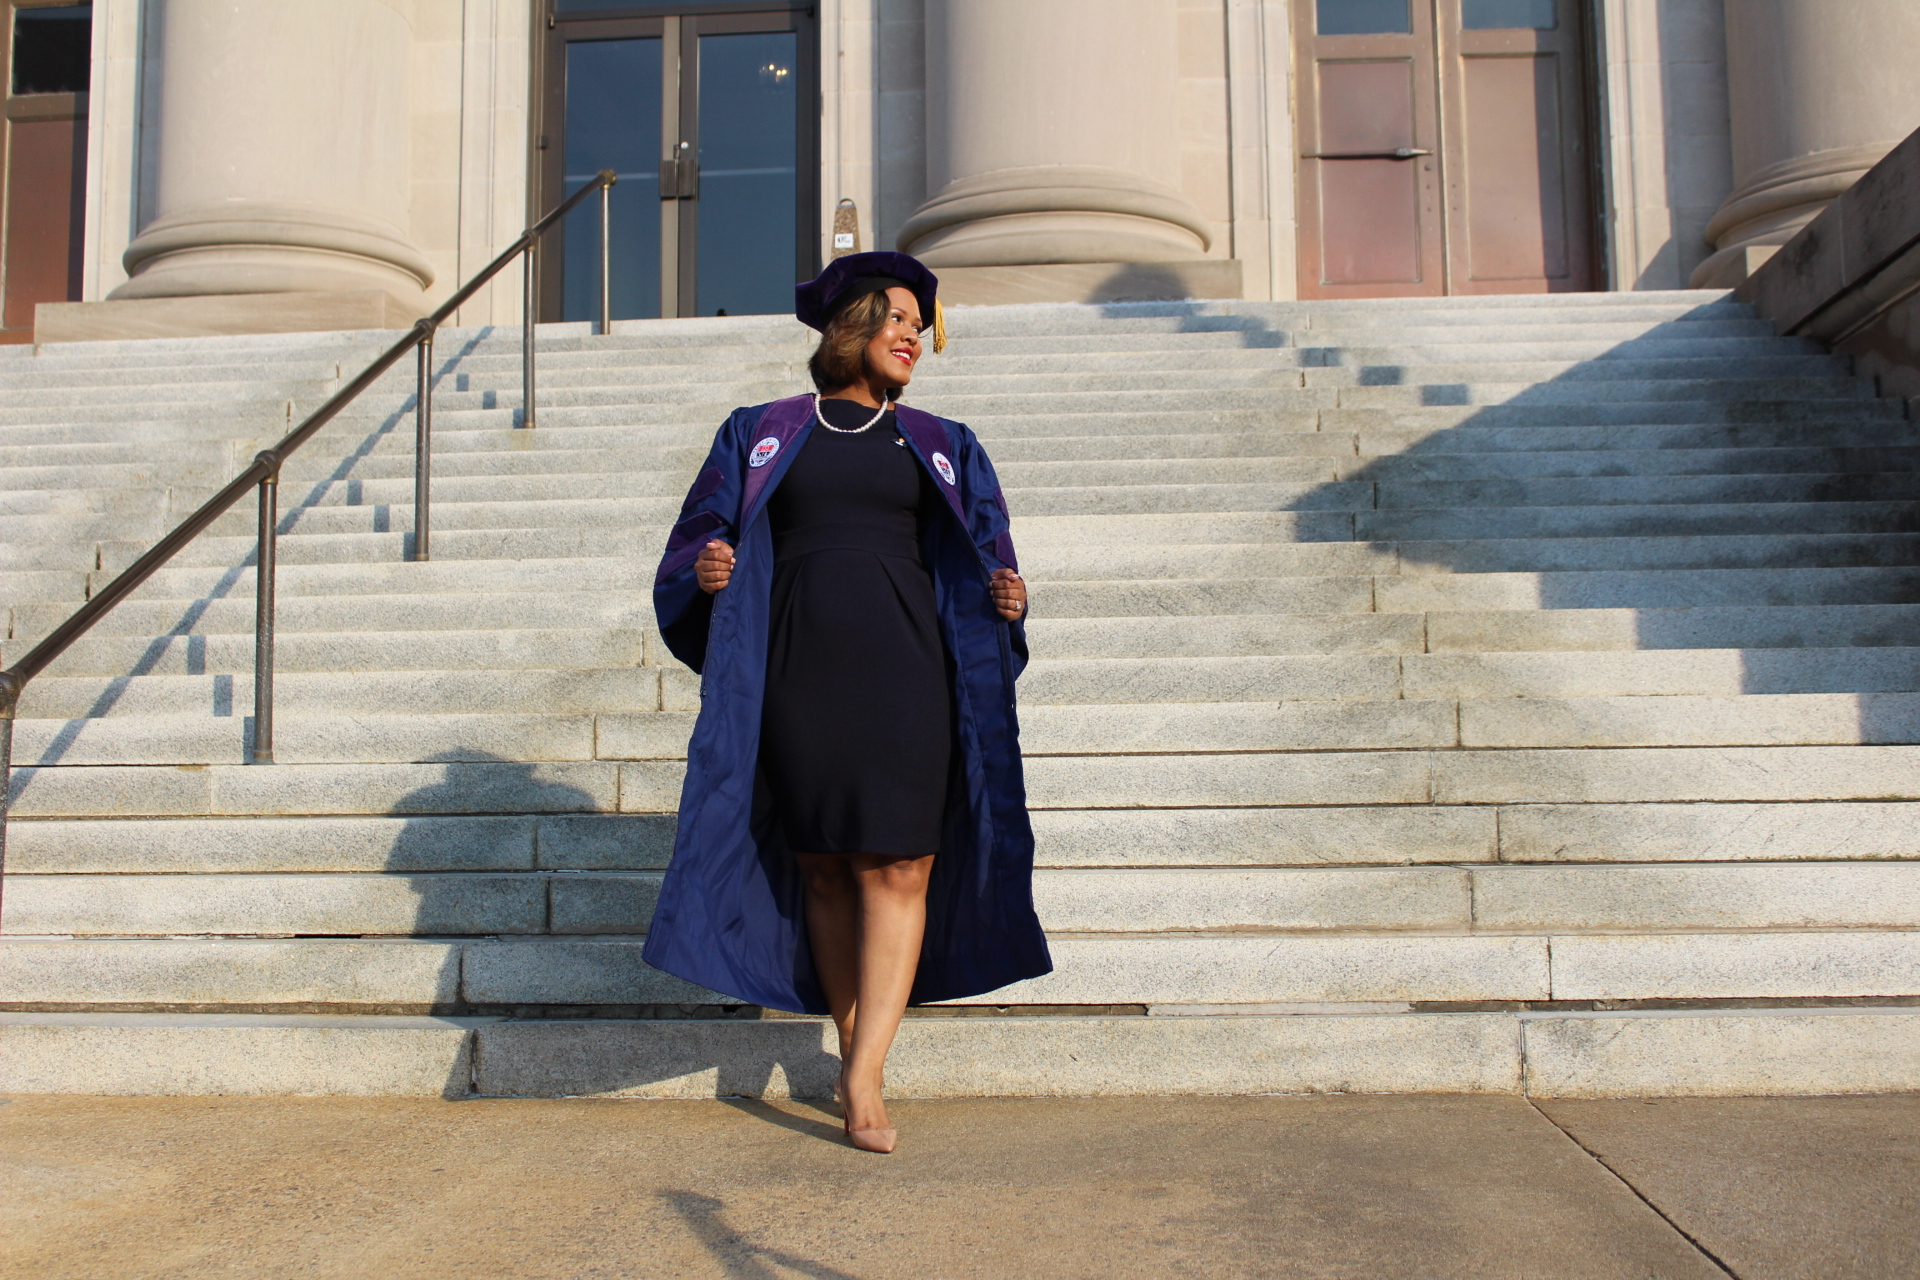 Black Girl Law School Graduation - LegallyMed